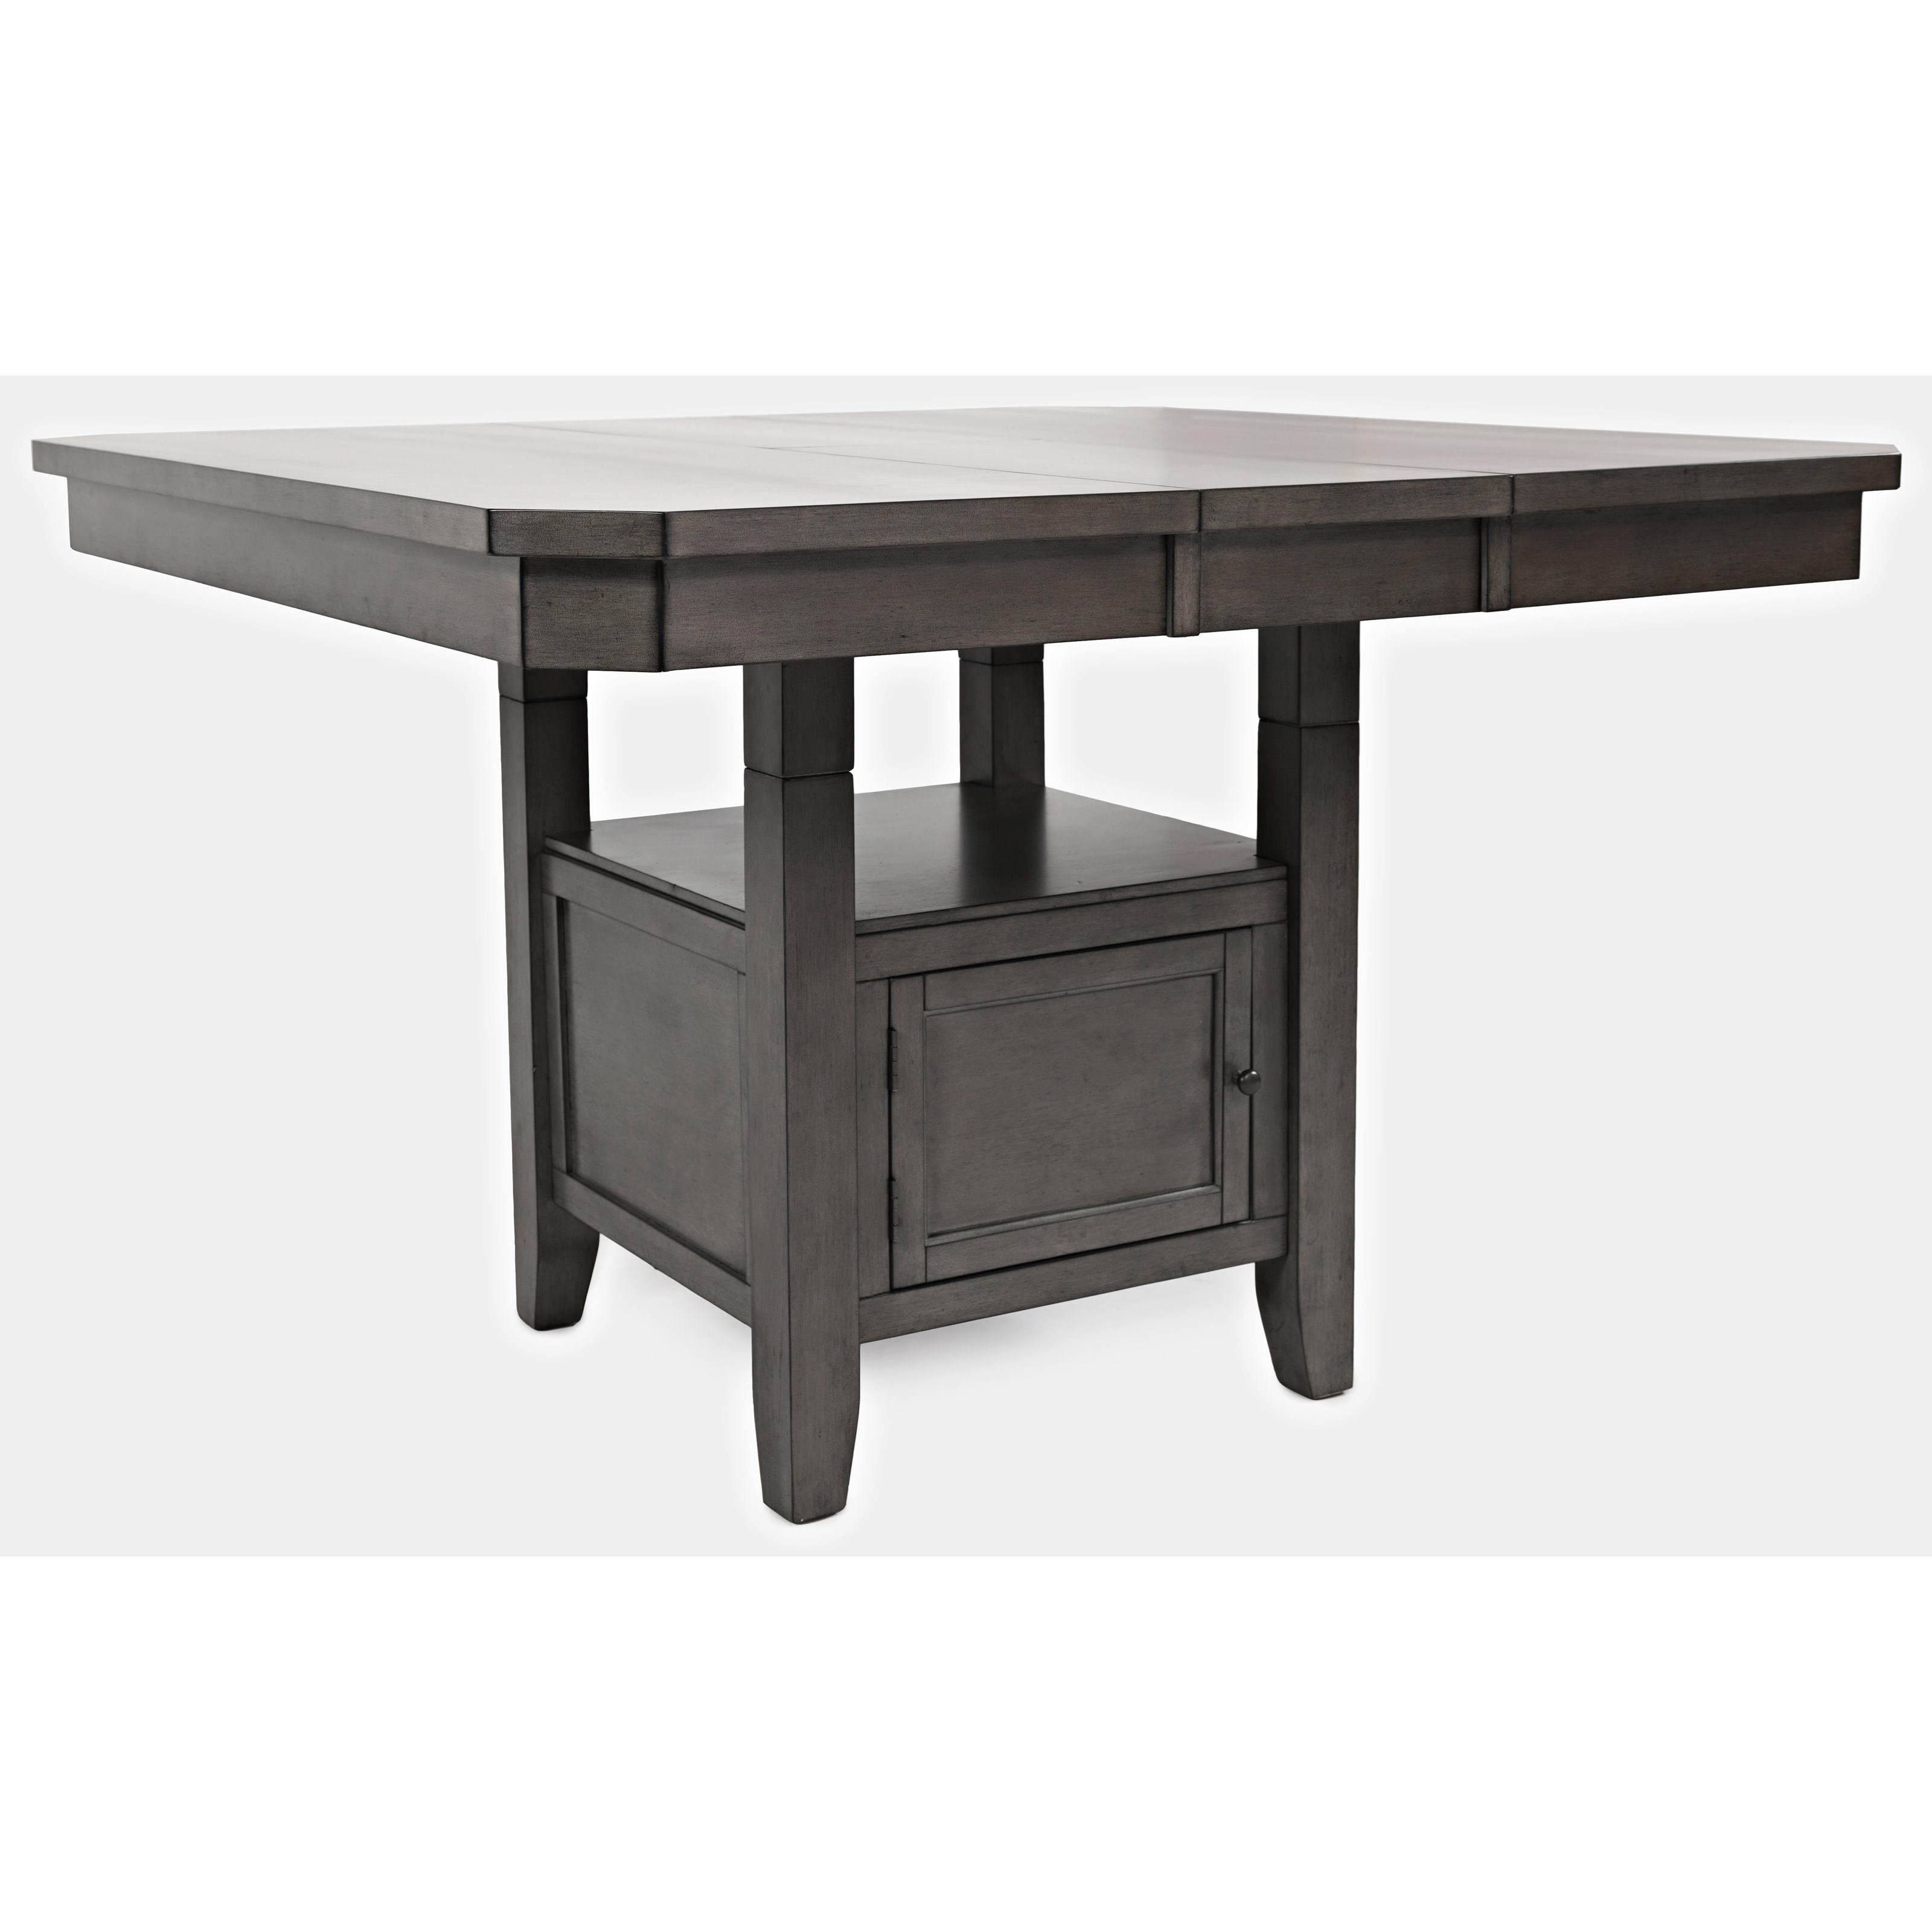 Jofran Manchester 1872 54 High Low Square Dining Table